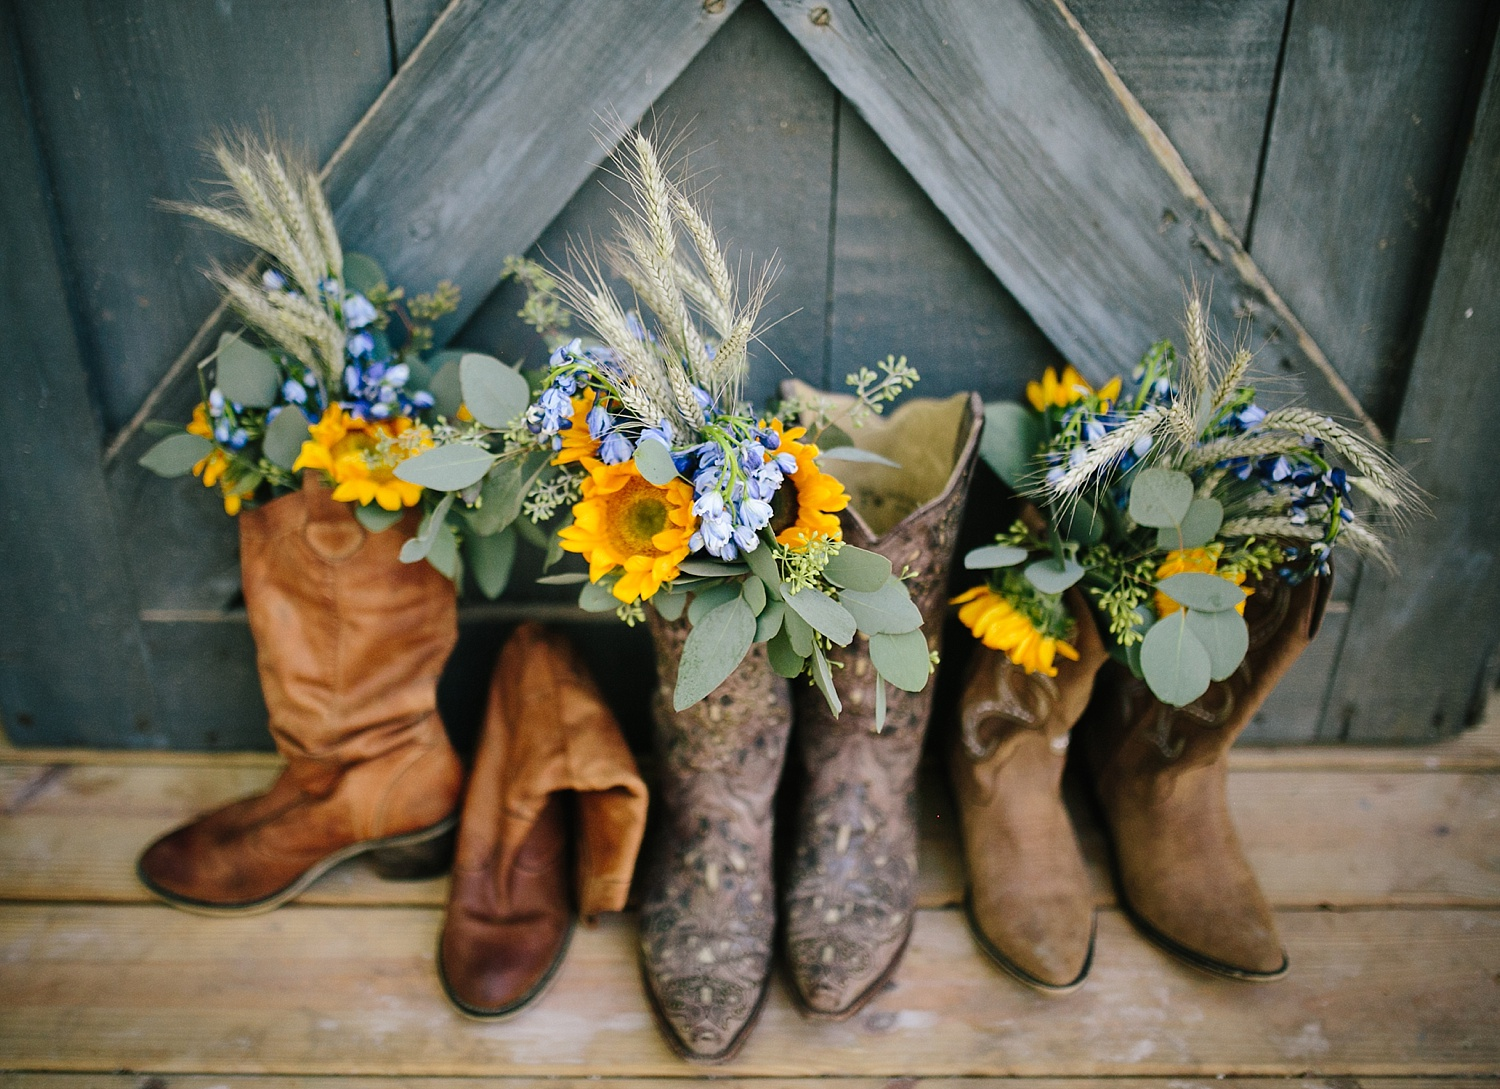 jennyryan_newbeginnings_farmstead_upstatenewyork_wedding_image007.jpg